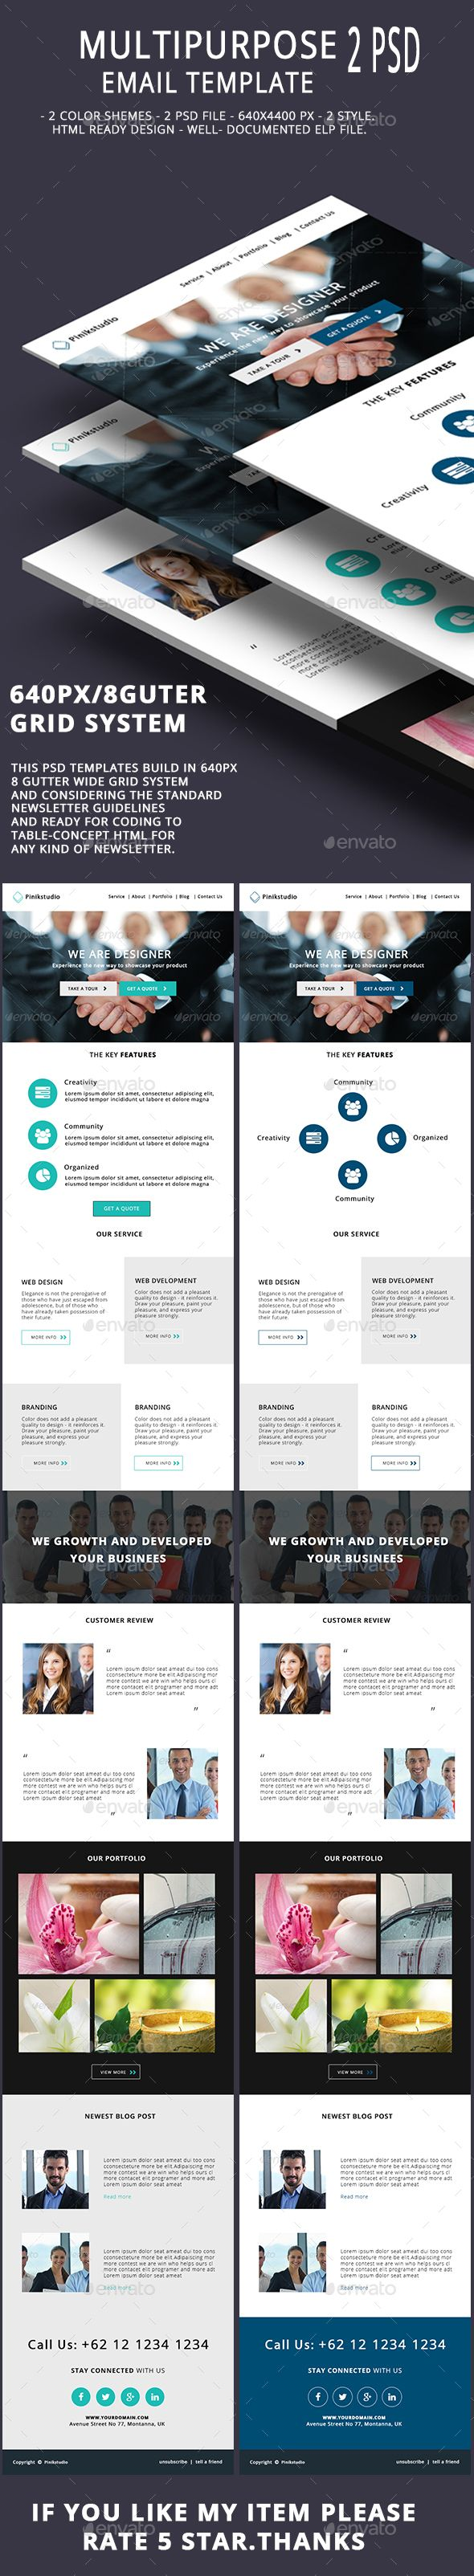 Multipurpose Email Template V9 | Template, Corporate business and ...